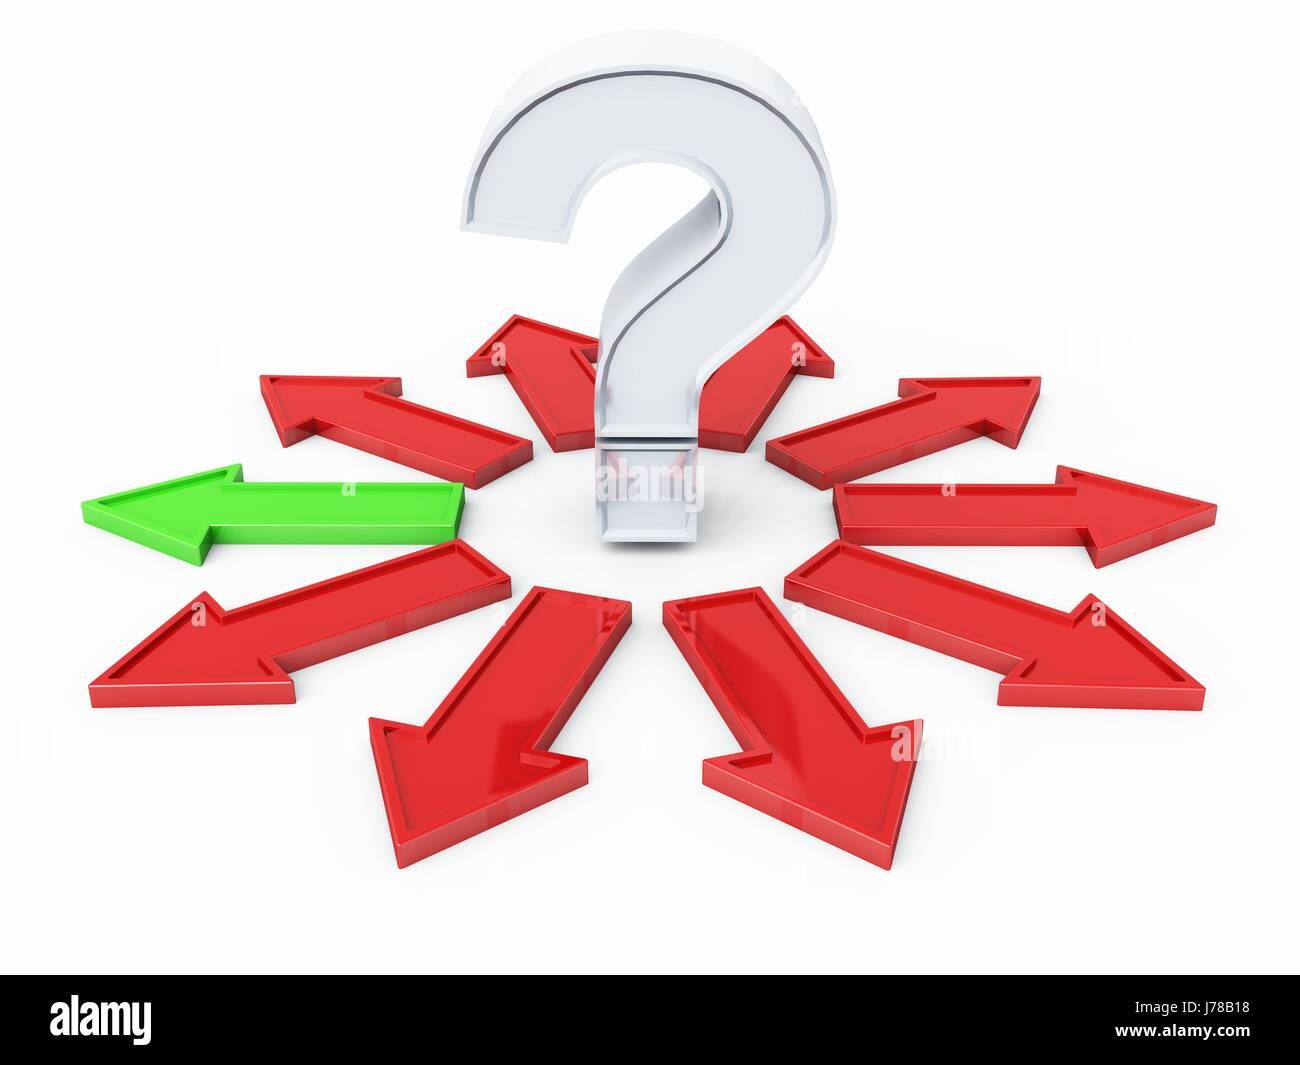 question mark 23 - Stock Image